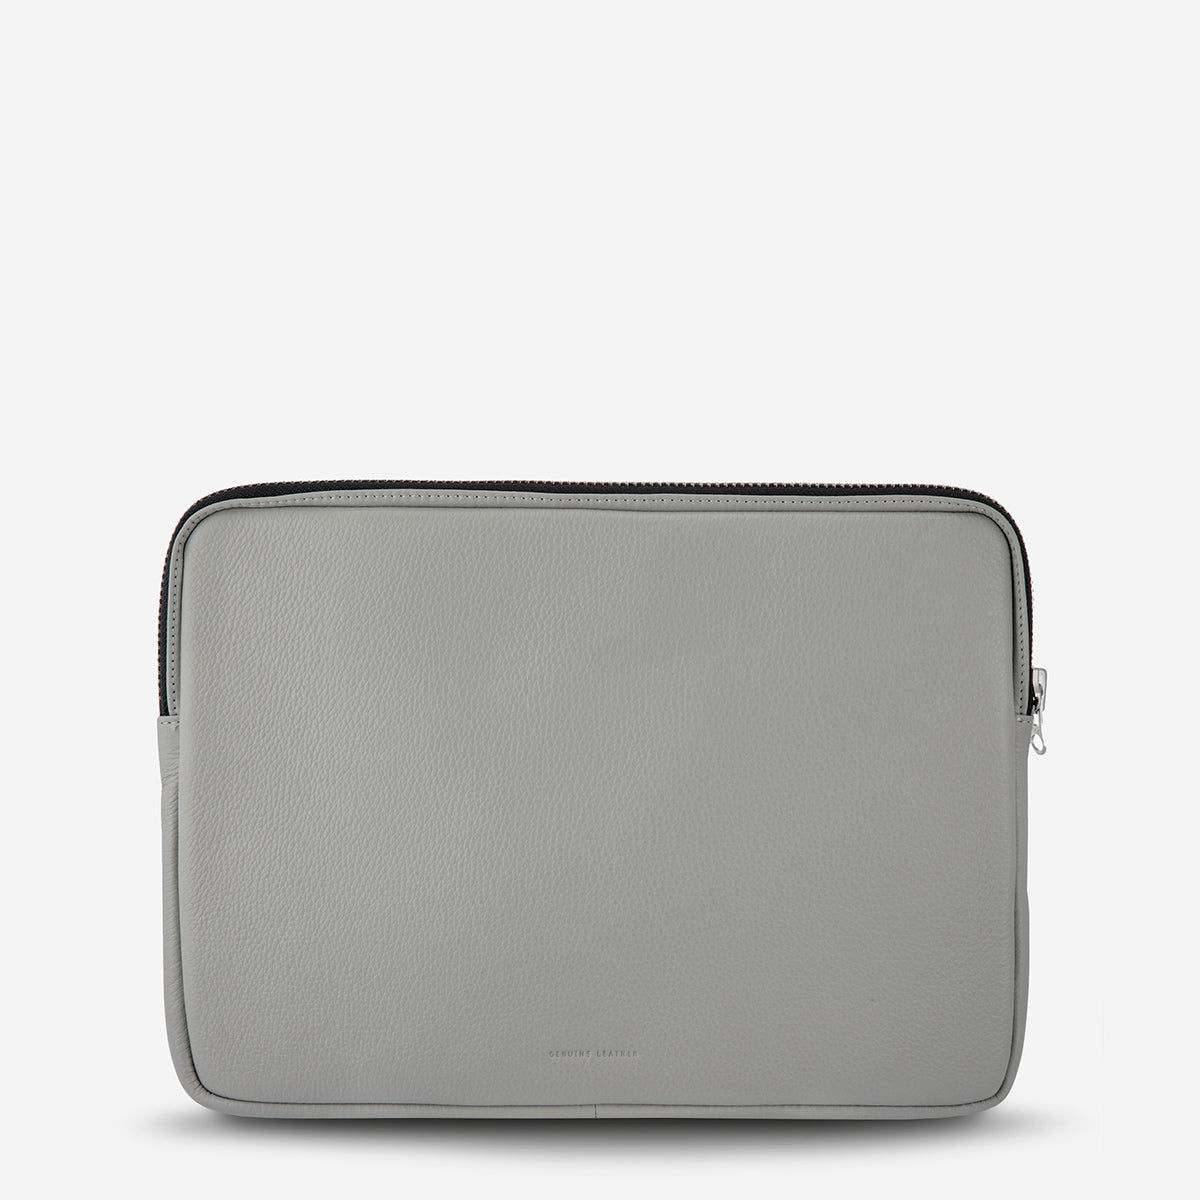 Status Anxiety Before I Leave Leather Laptop Case - Light Grey